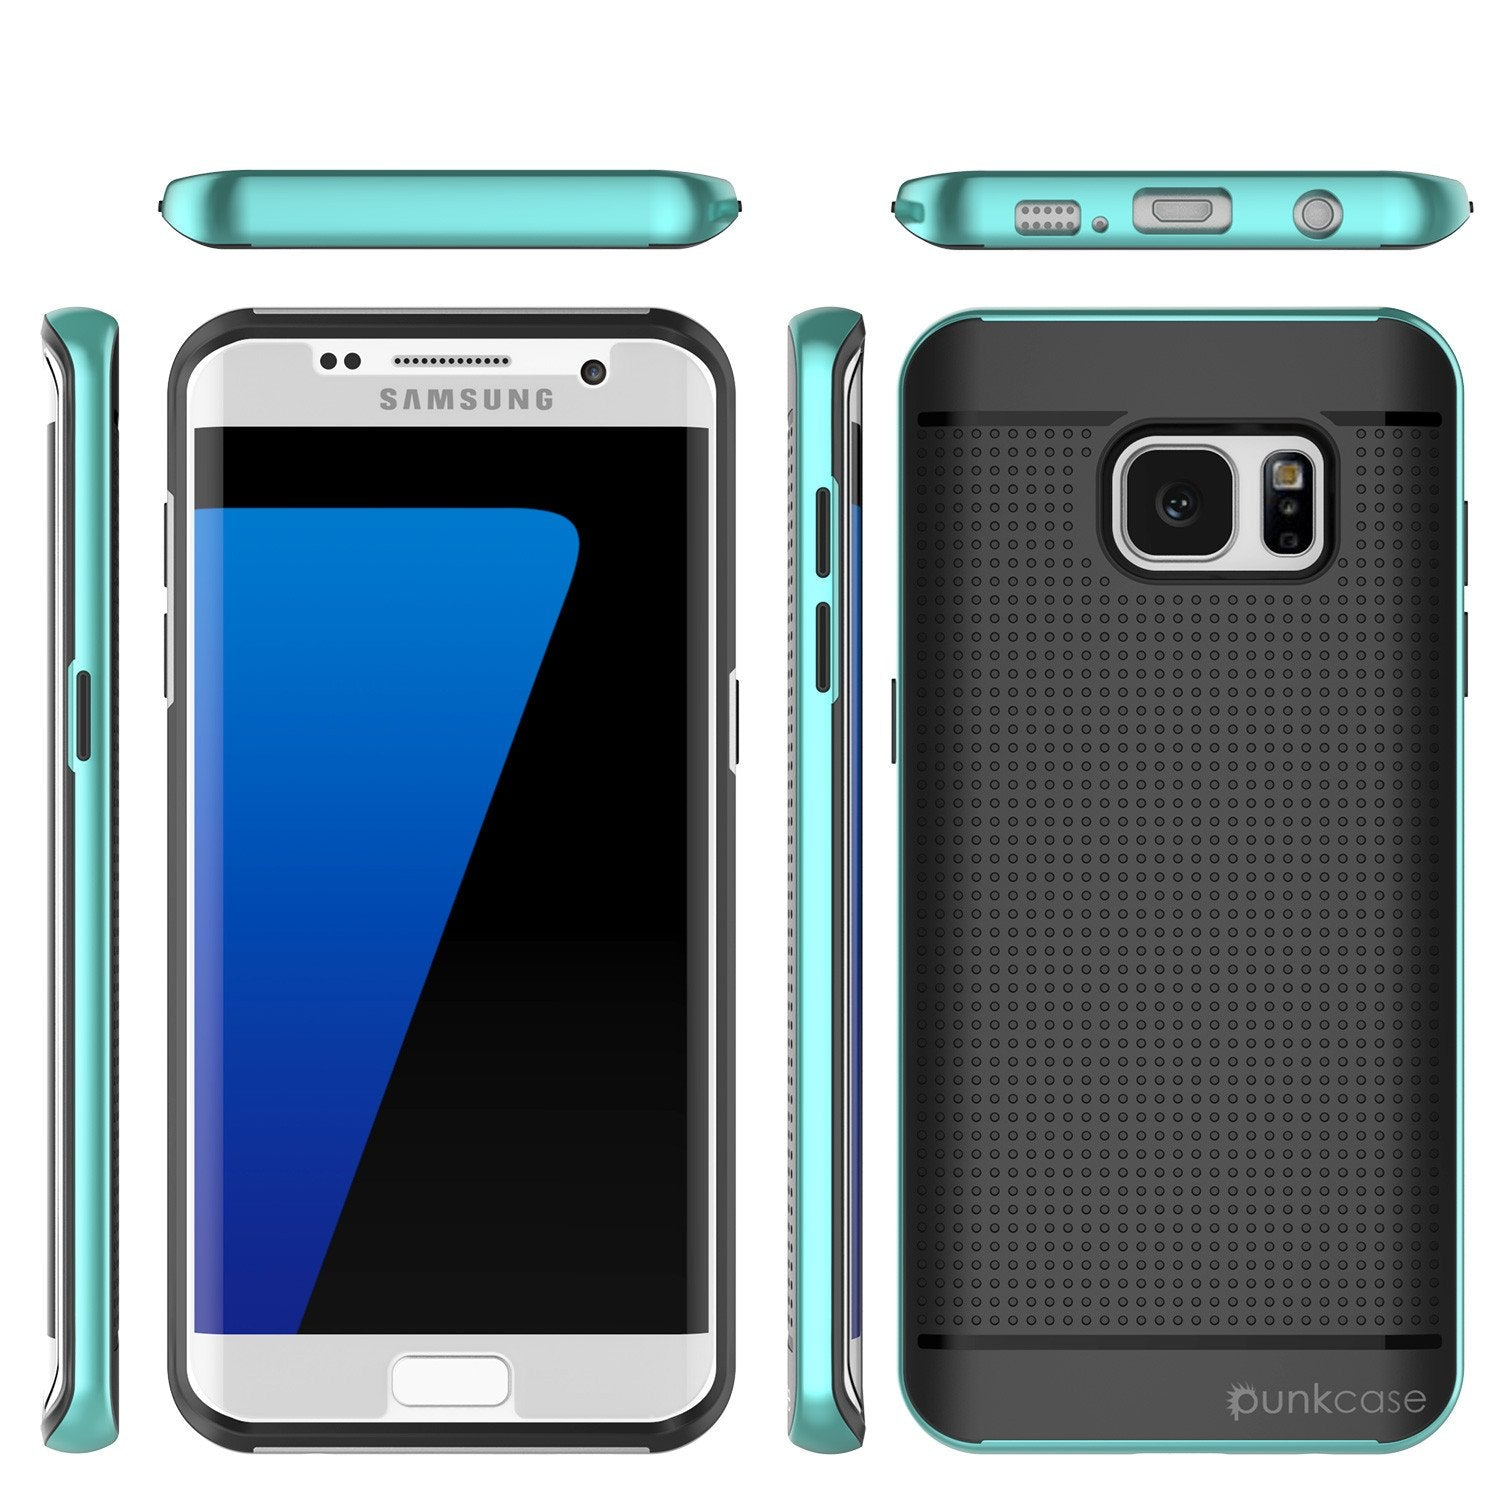 Galaxy S7 Edge Case, PunkCase STEALTH Teal Series Hybrid 3-Piece Shockproof Dual Layer Cover